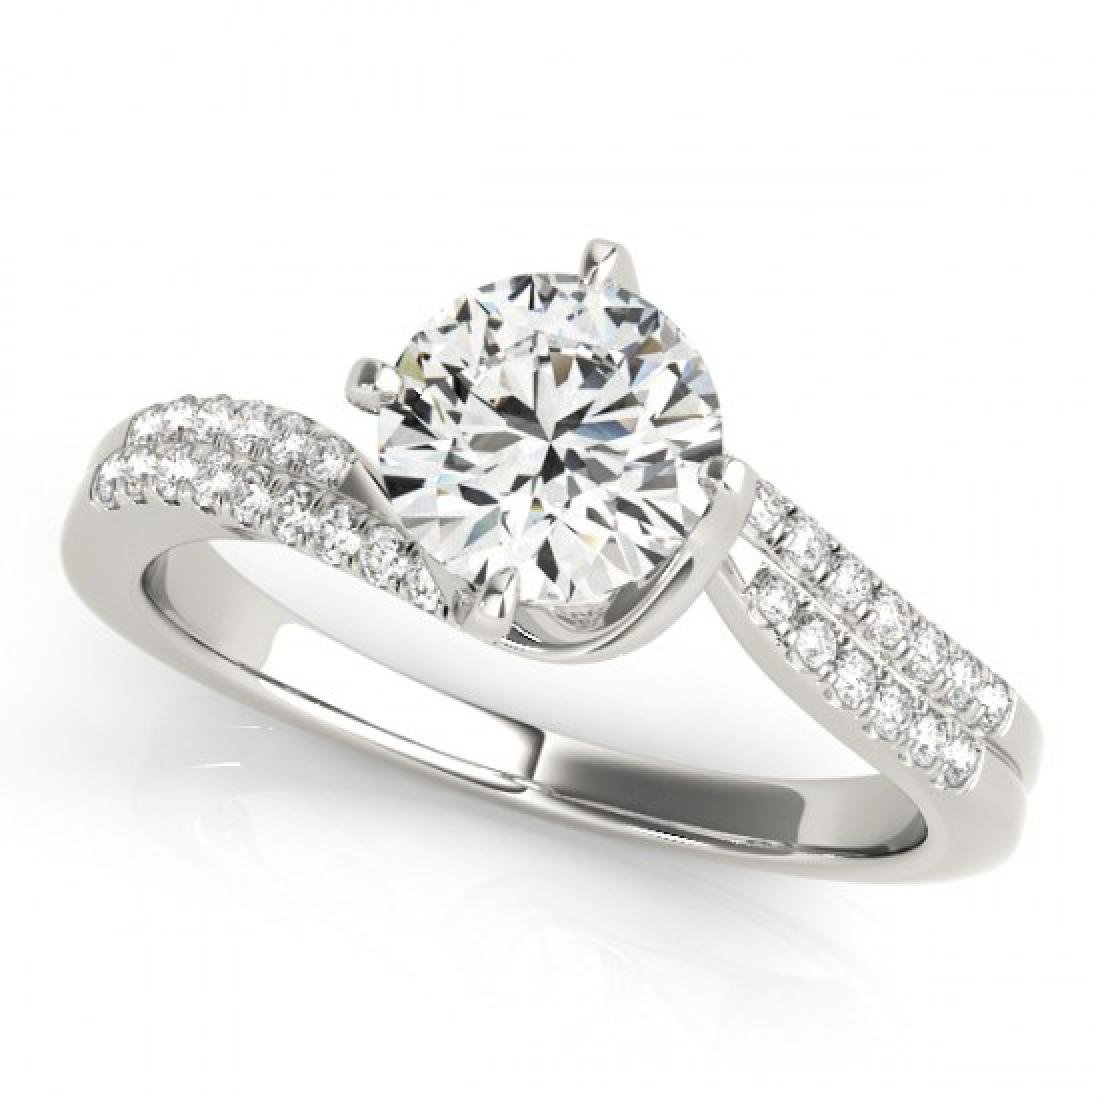 1.2 CTW Certified VS/SI Diamond Bypass Solitaire Ring